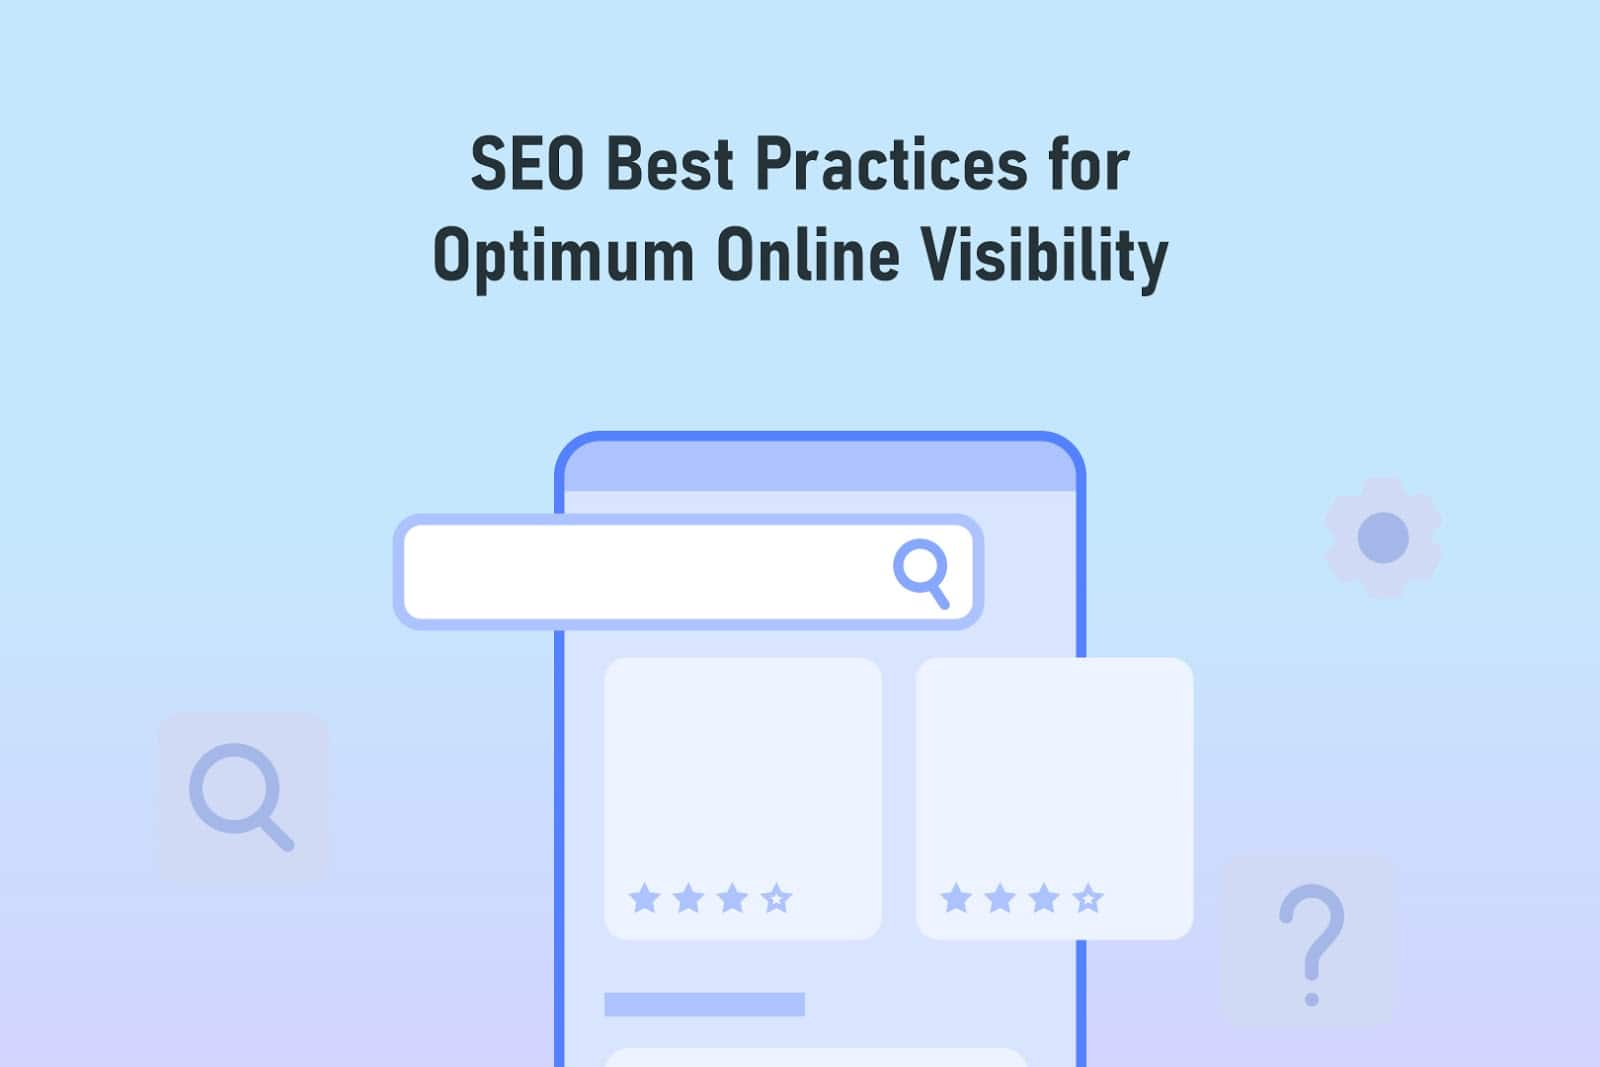 SEO Best Practices for Optimum Online Visibility